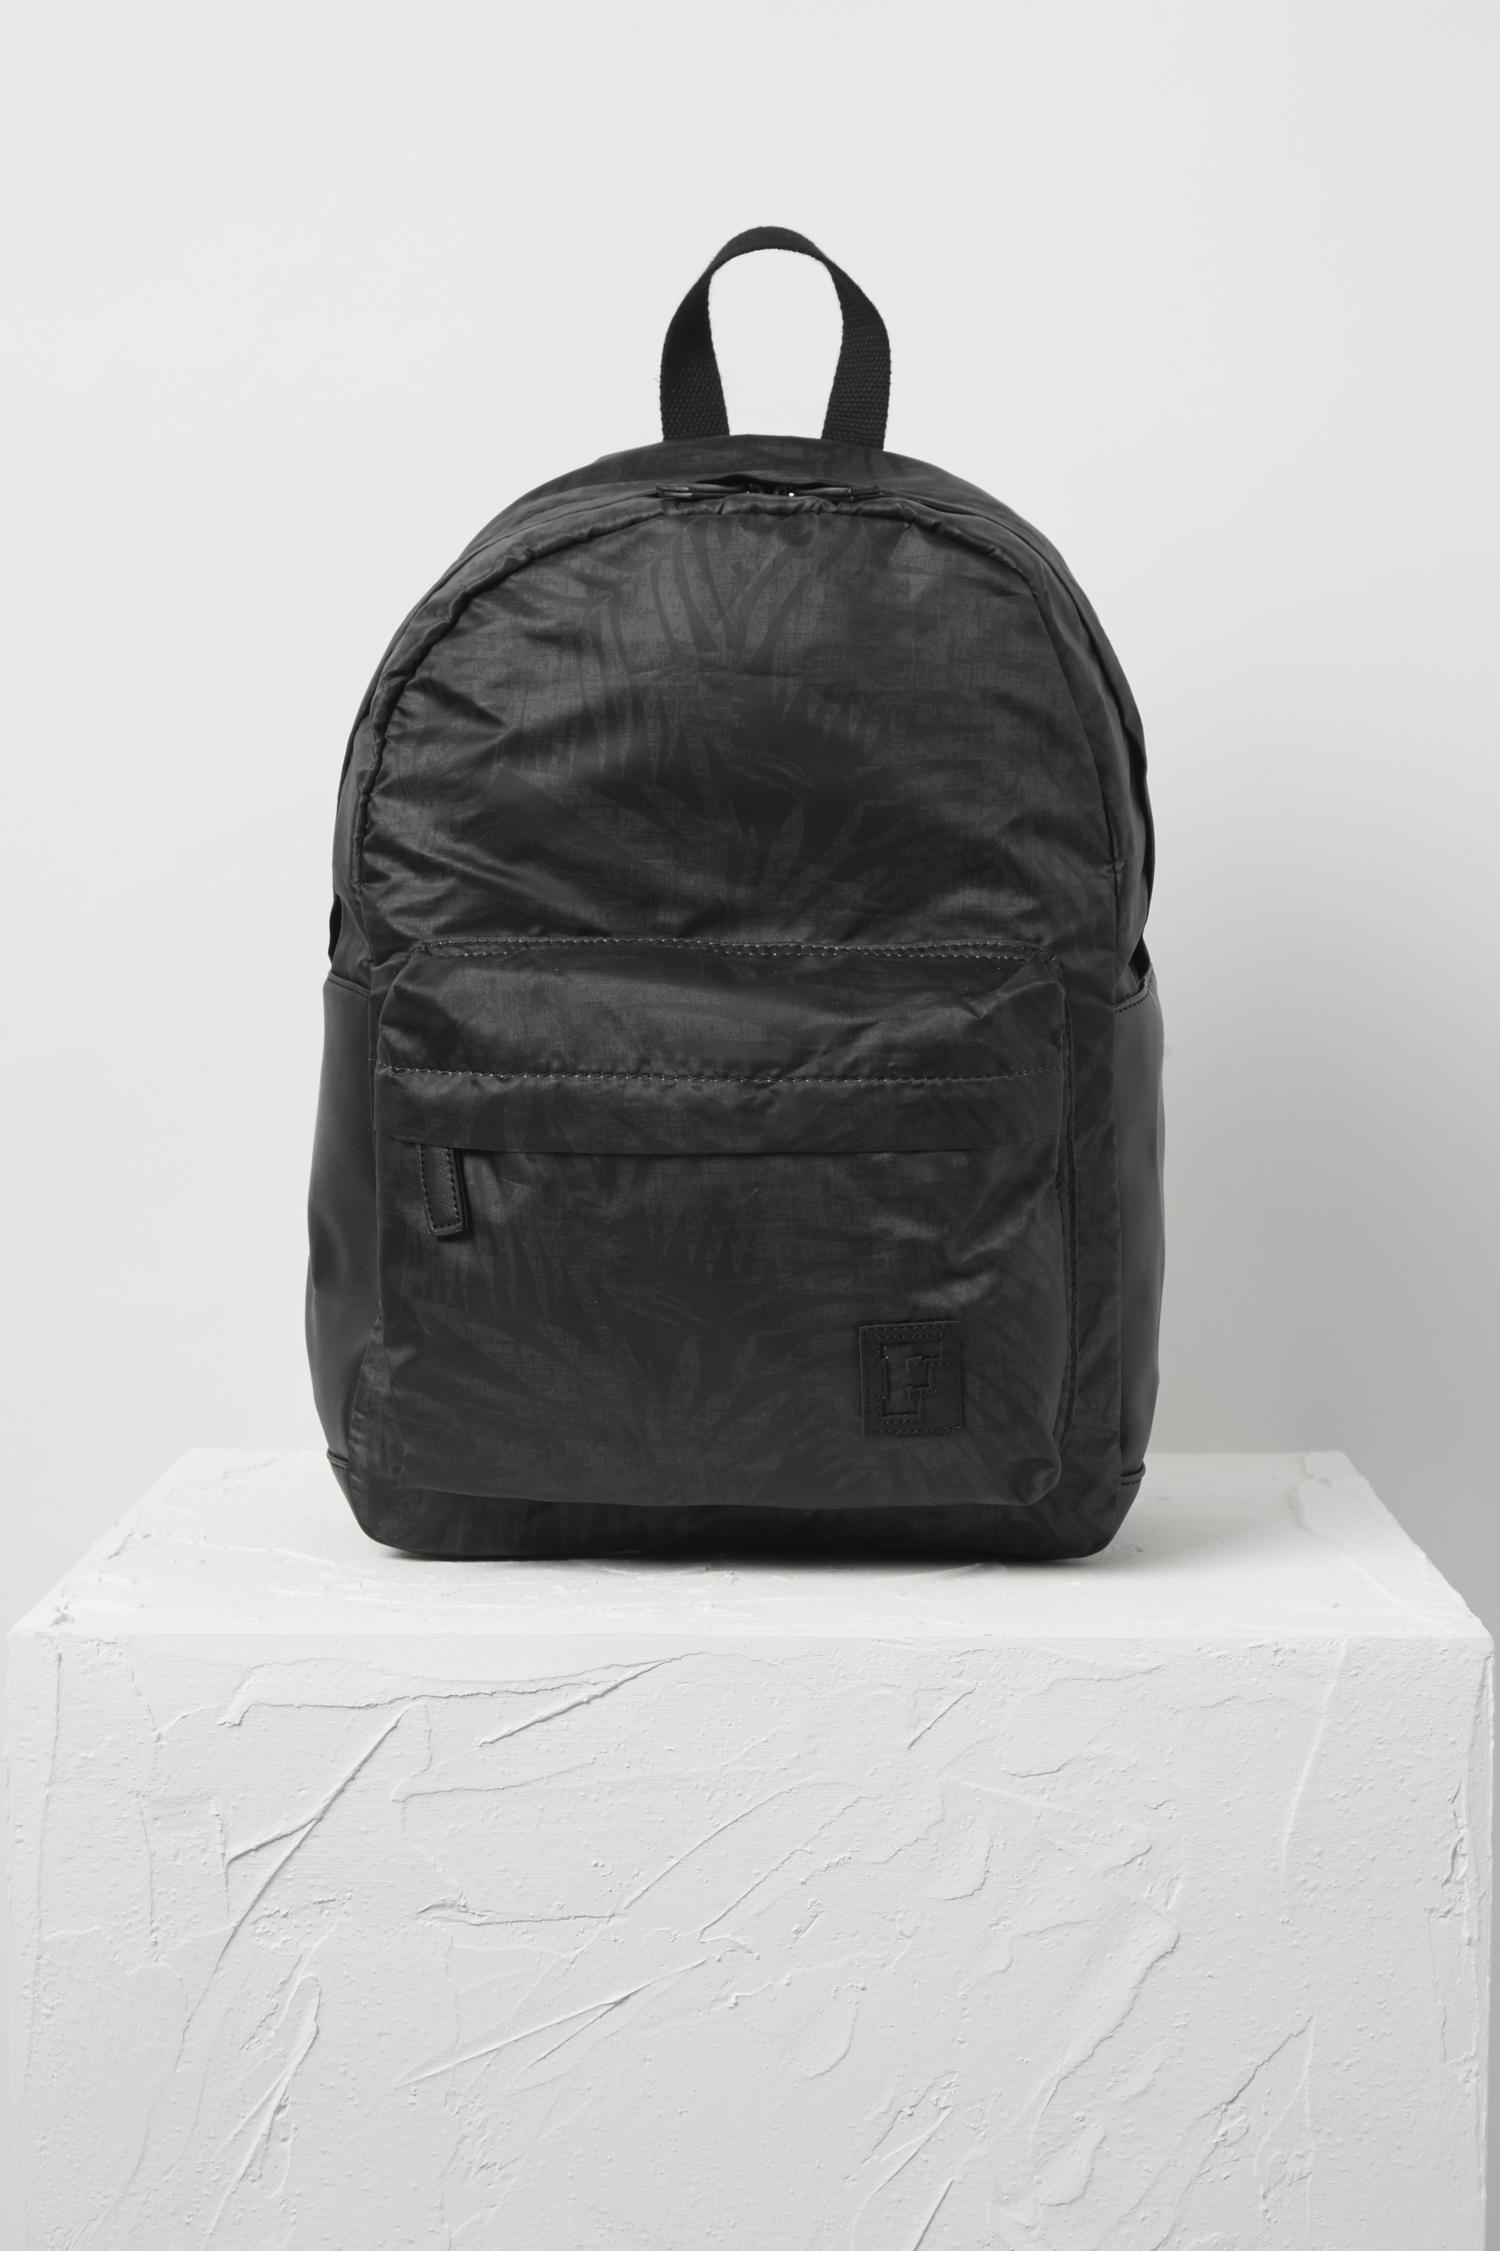 356e534686 Lyst - French Connection Printed Backpack in Black for Men